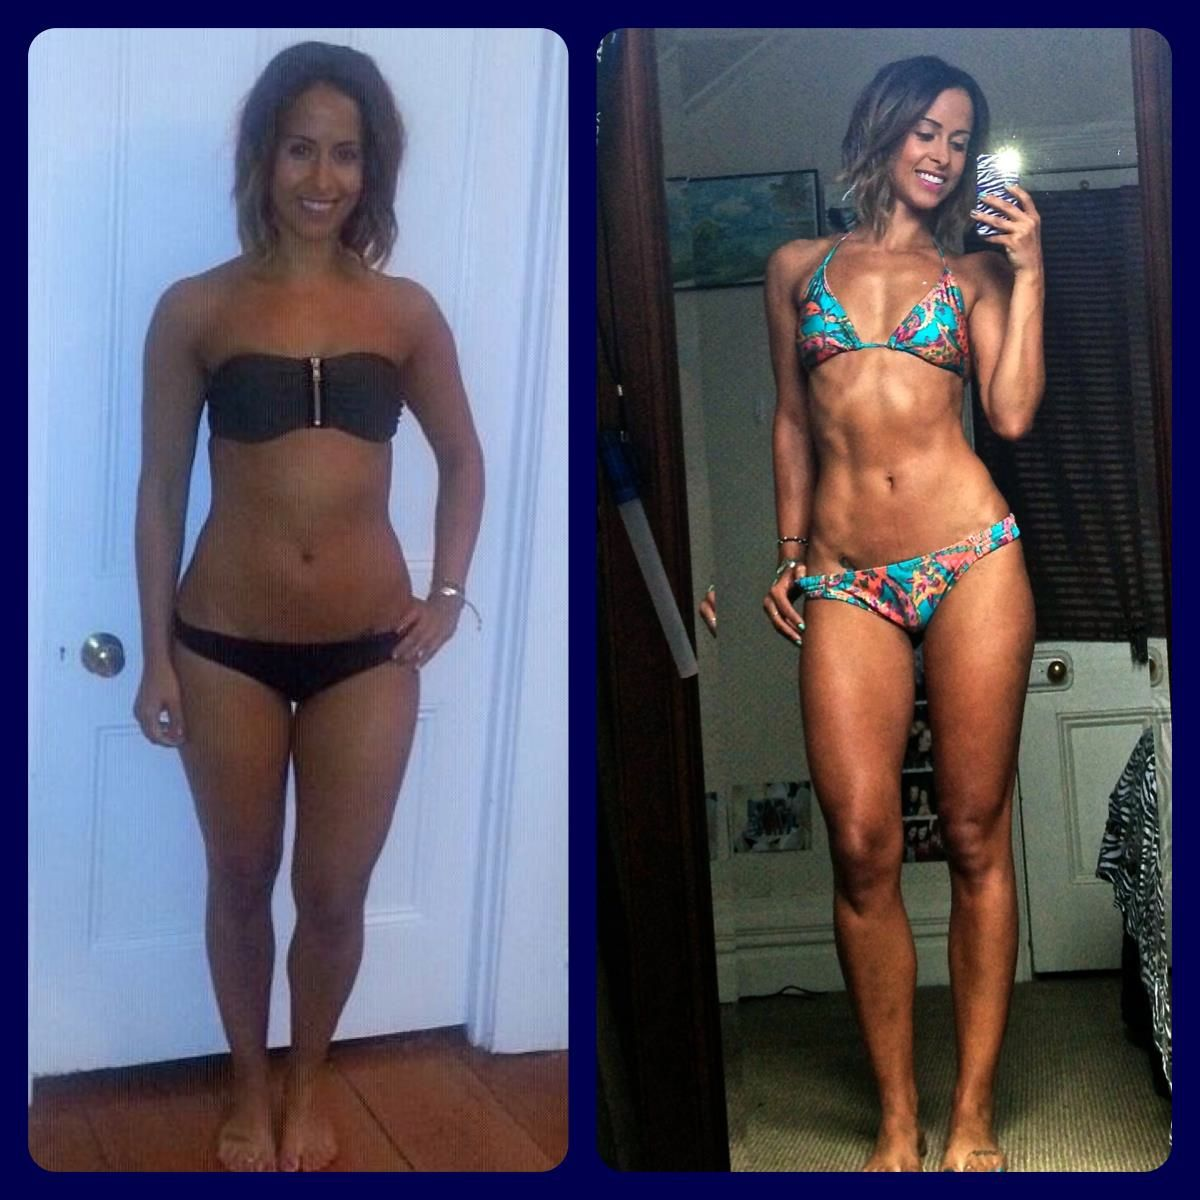 Supposed To Be A Before And After Crossfit Picture I Think She Looks Million Times Better In The BEFORE